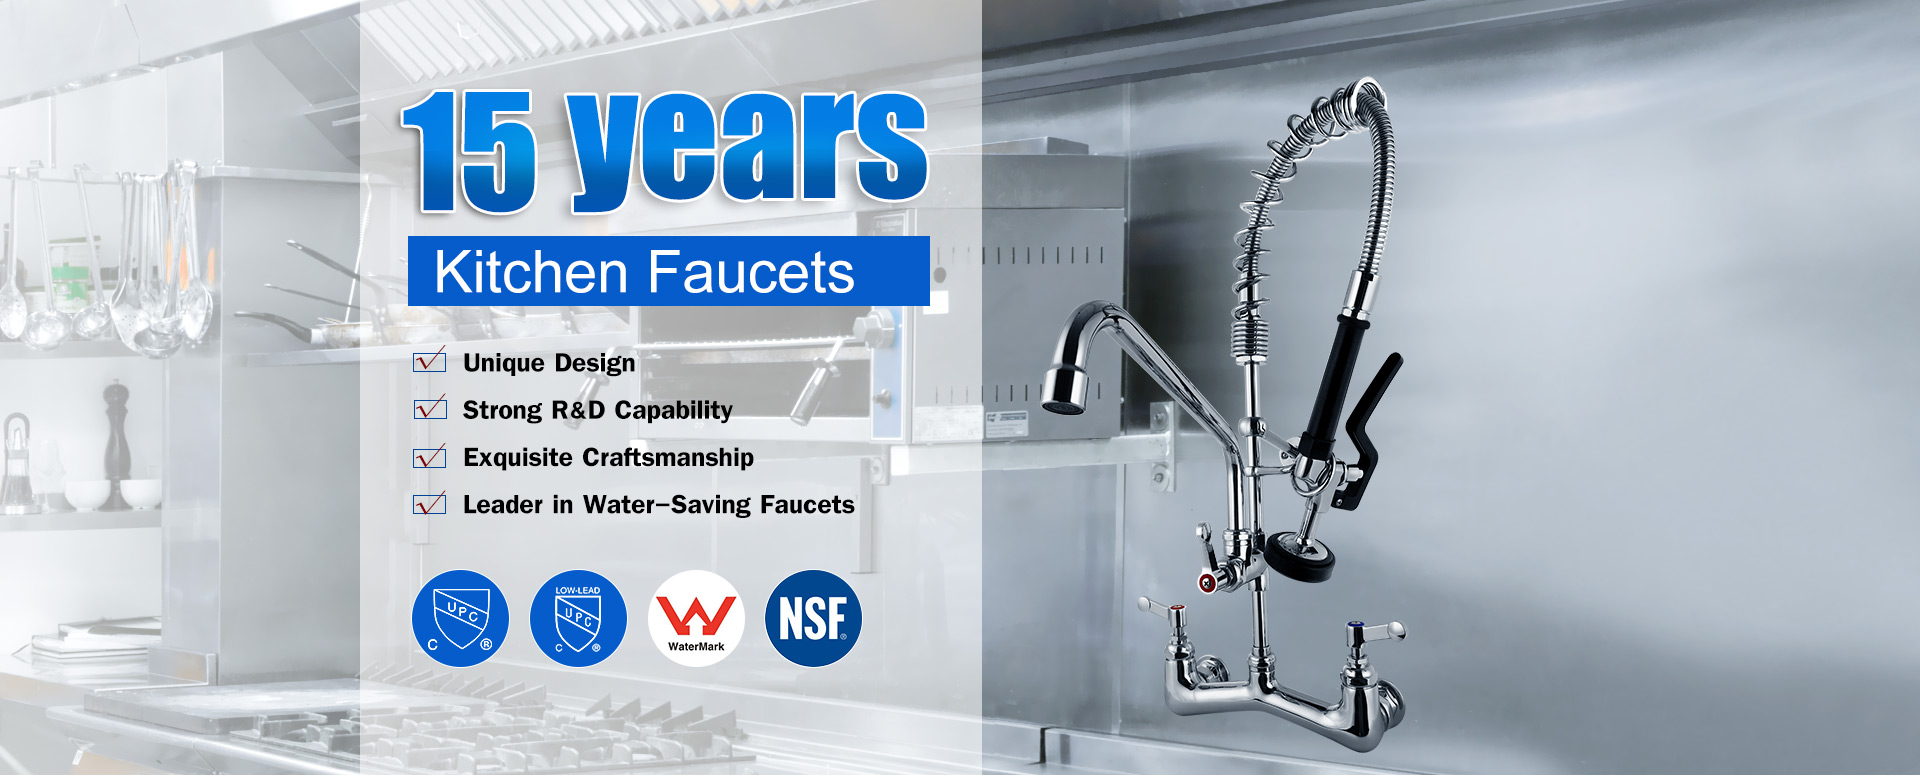 Shenzhen Ming Sheng Kitchen Equipment Co., Ltd. - Kitchen Faucet ...